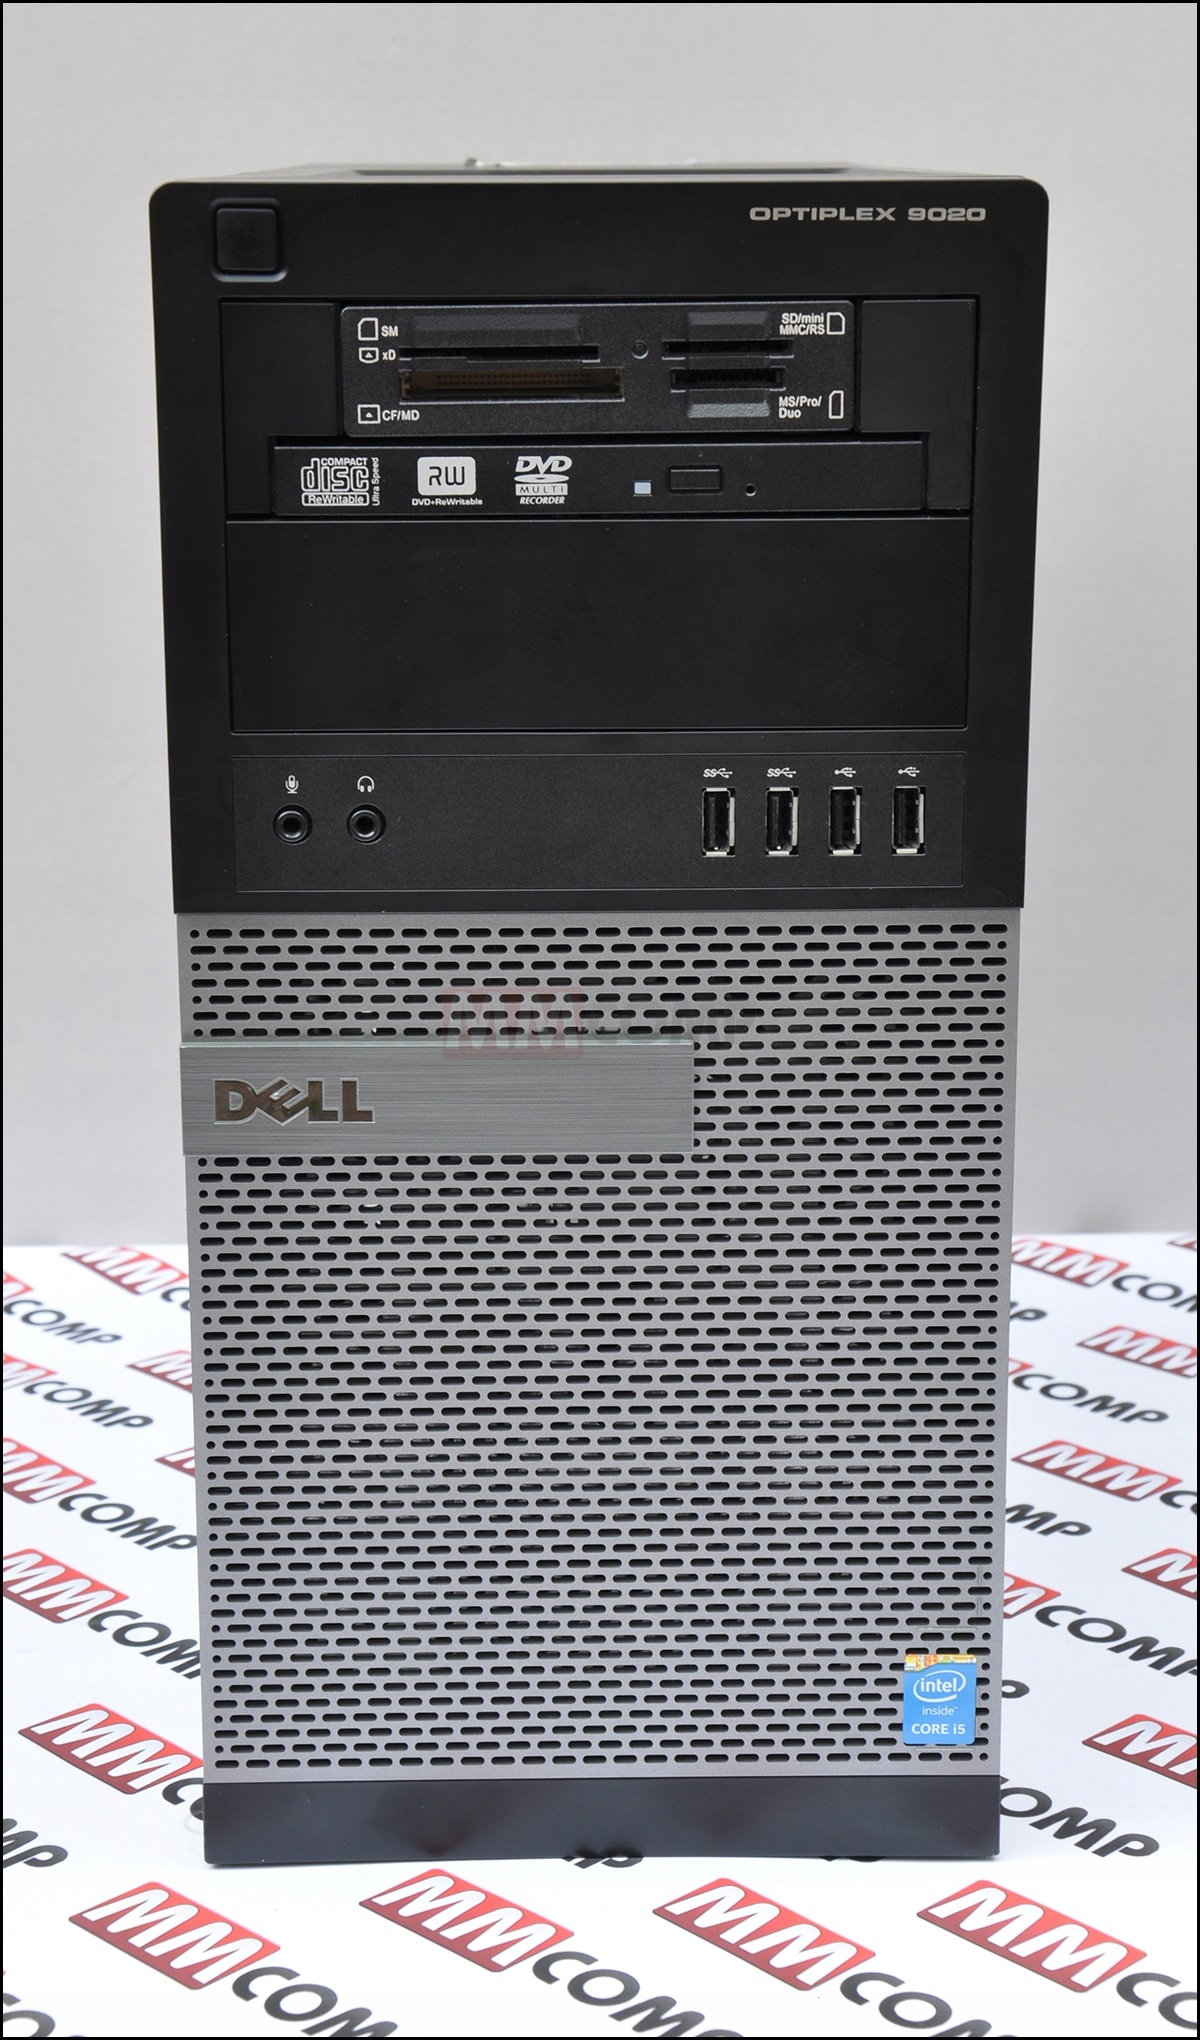 Dell 9020 Tower